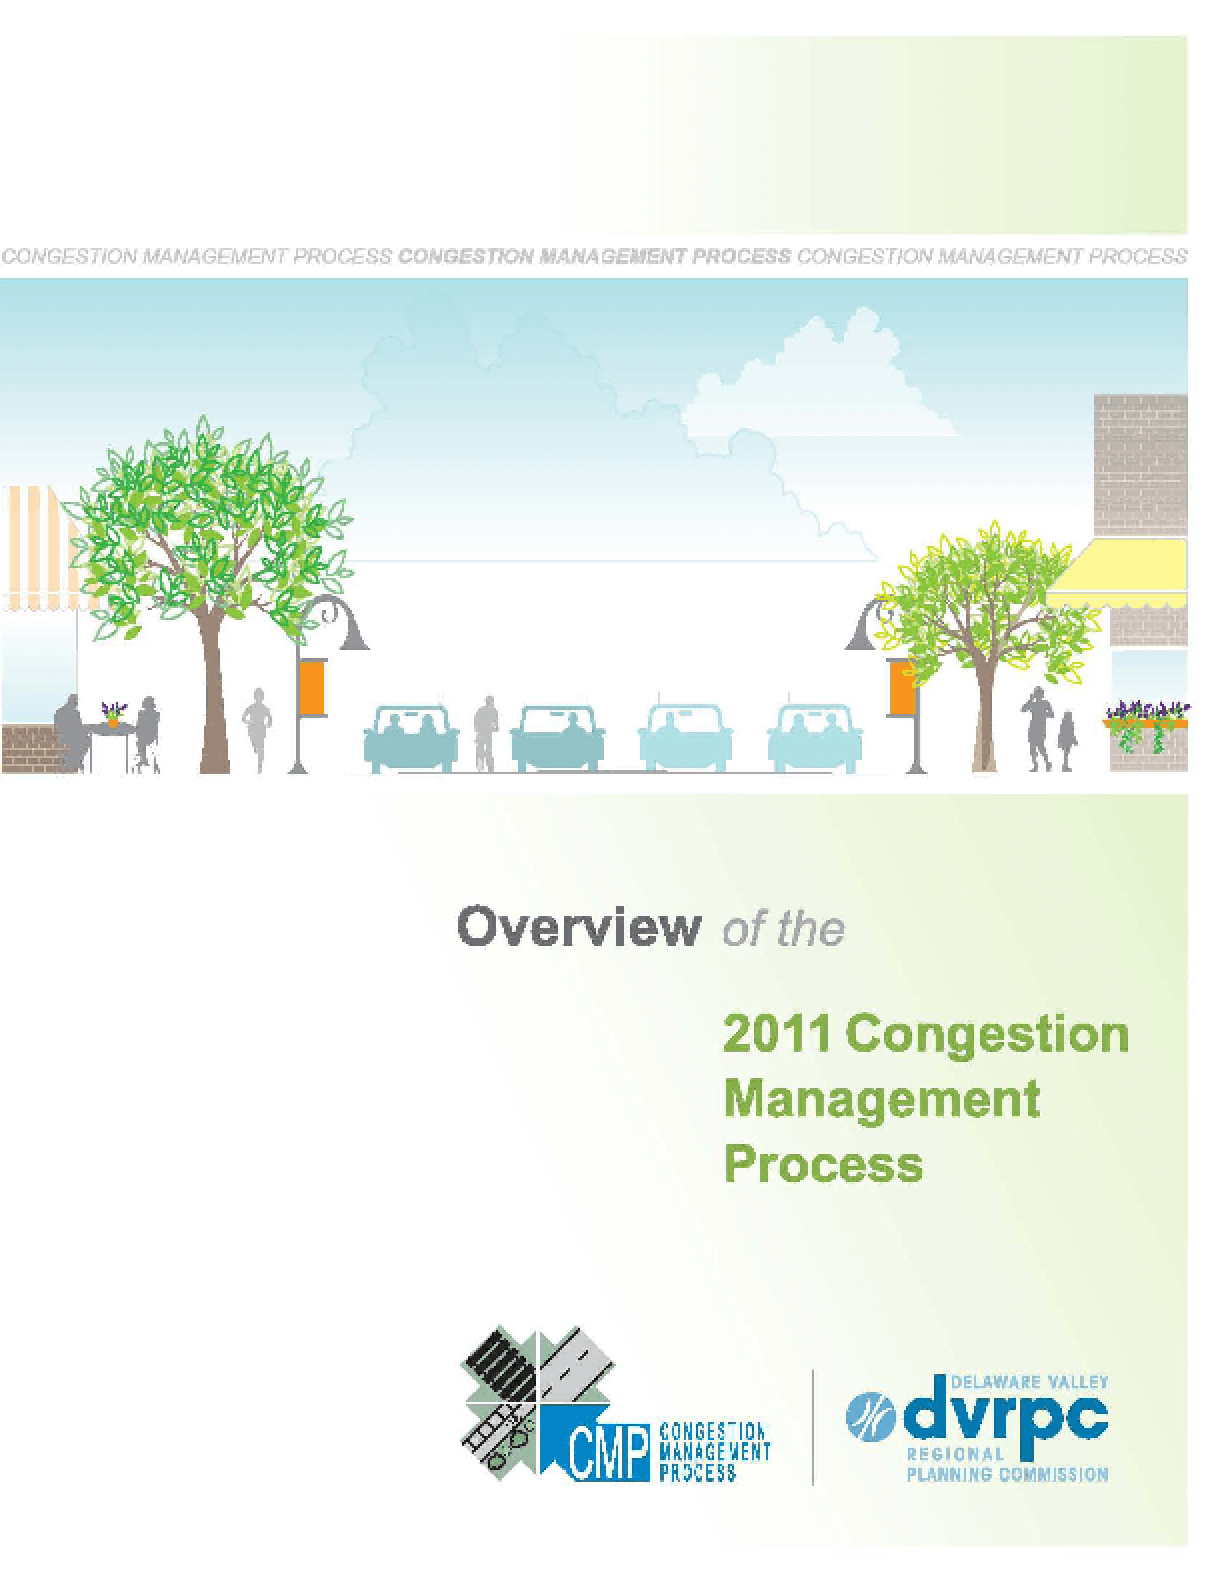 Overview of the 2011 Congestion Management Process